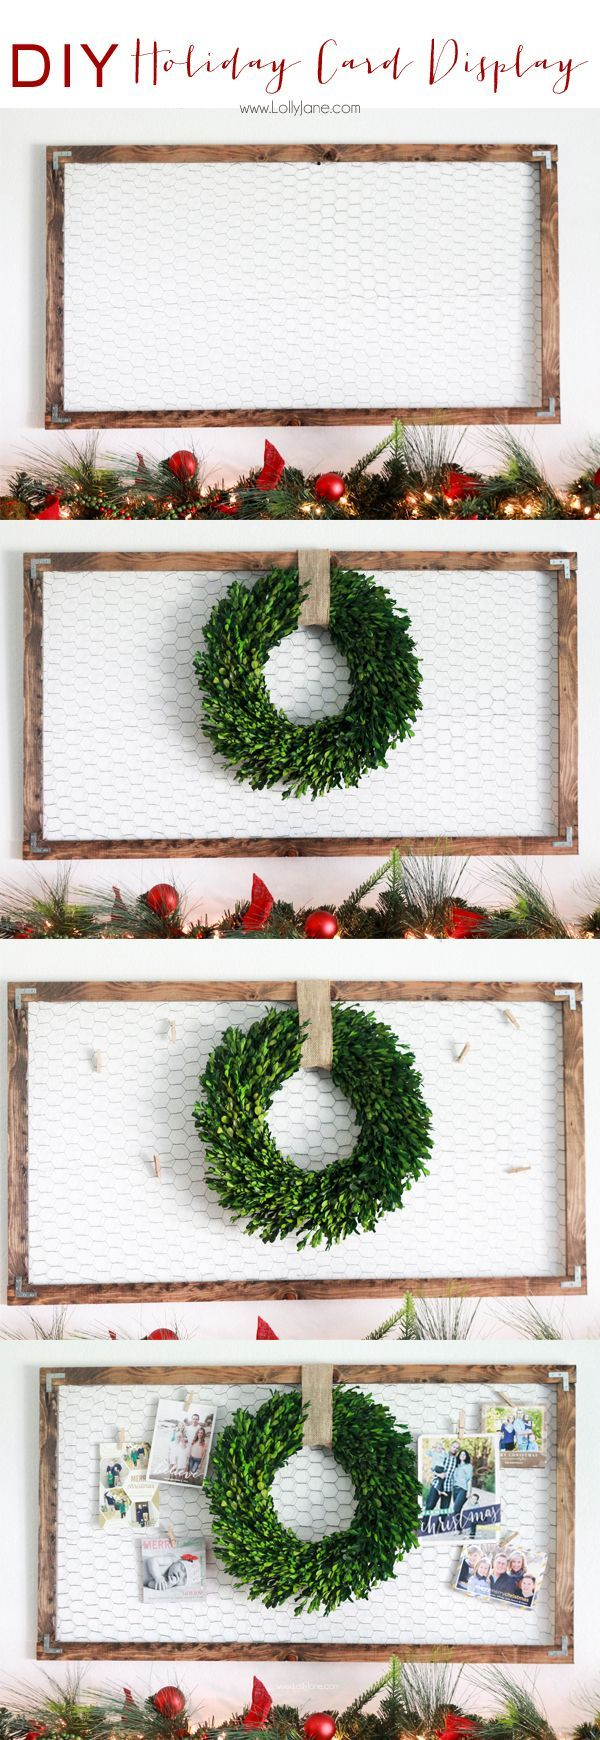 Ste-by-step guide to an easy and impactful #DIY Christmas & Holiday Card Display